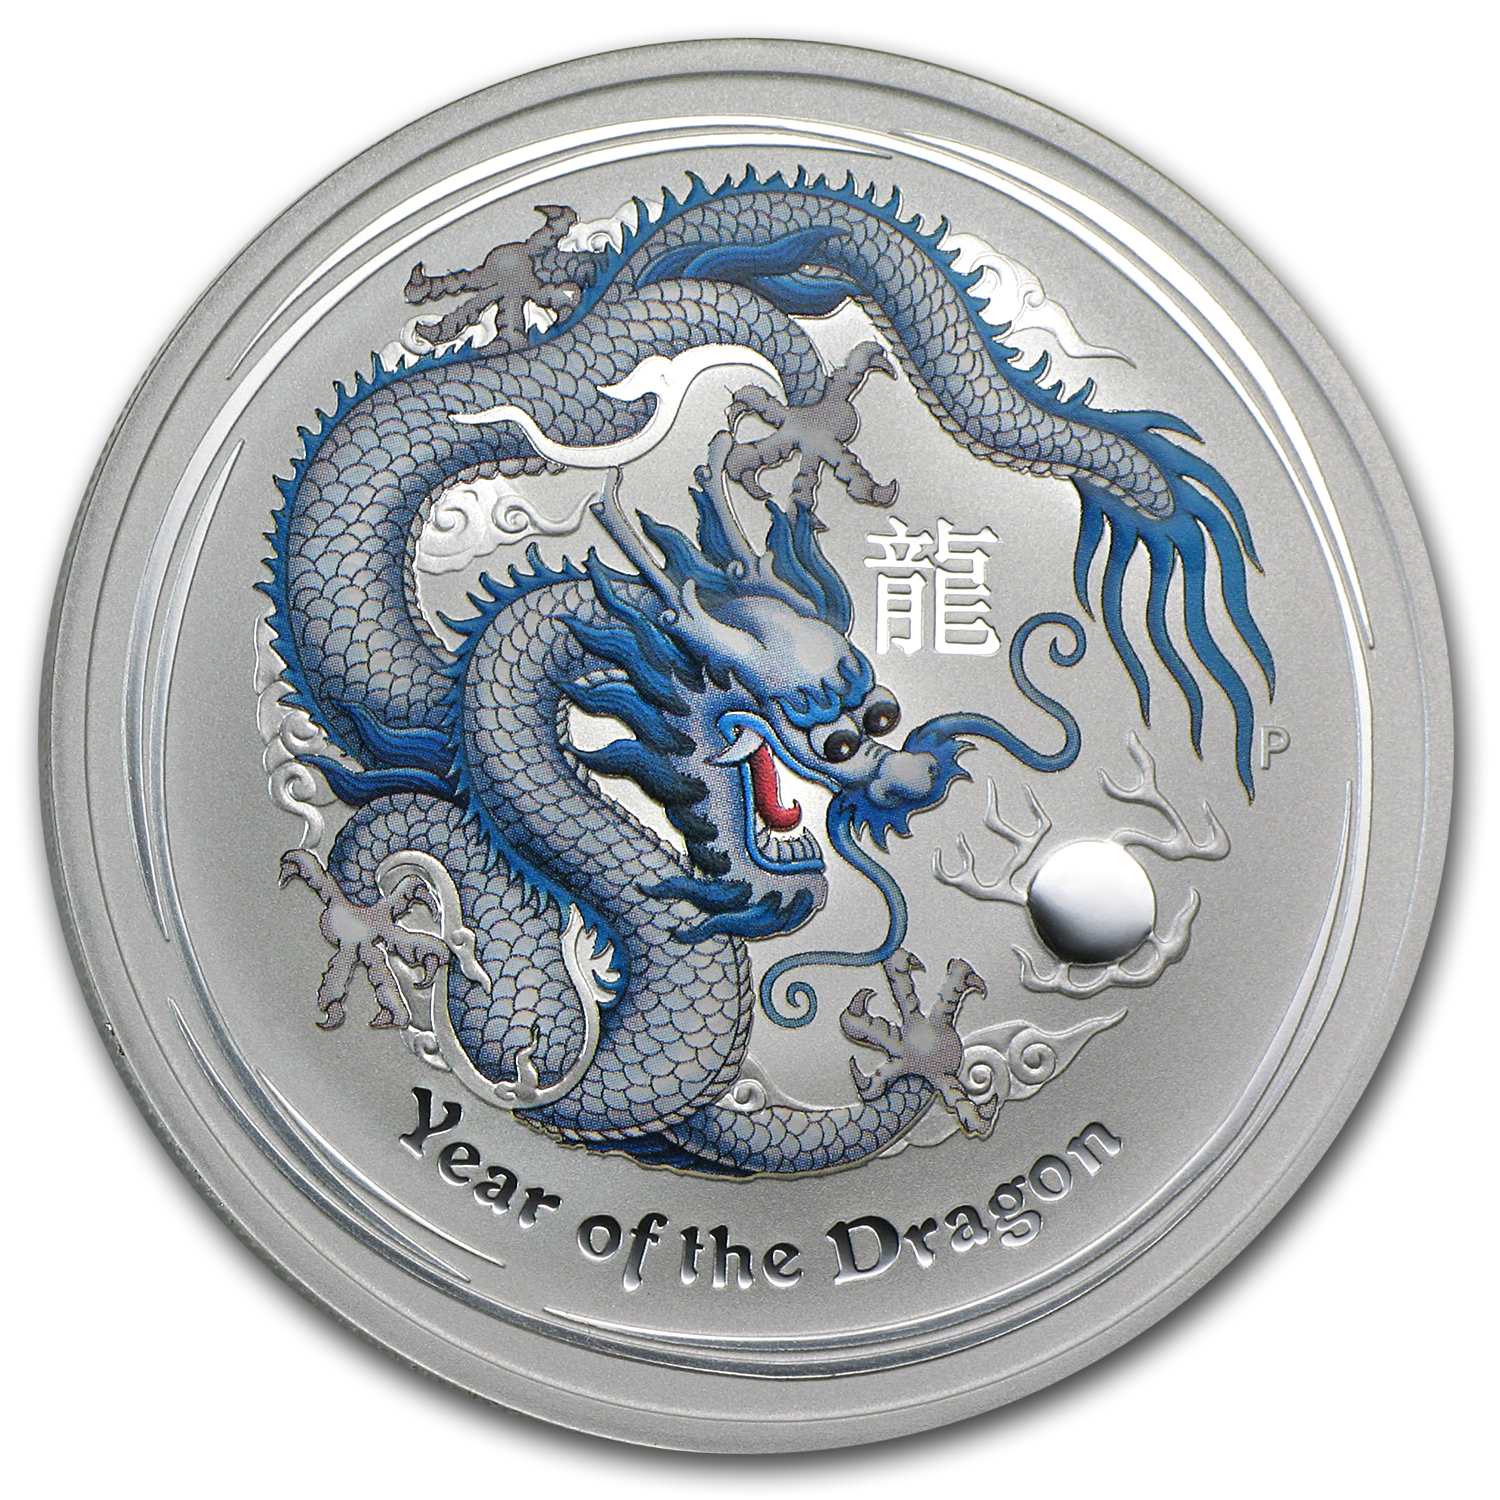 2012 Australia 1 oz Silver Dragon BU (White Colorized)